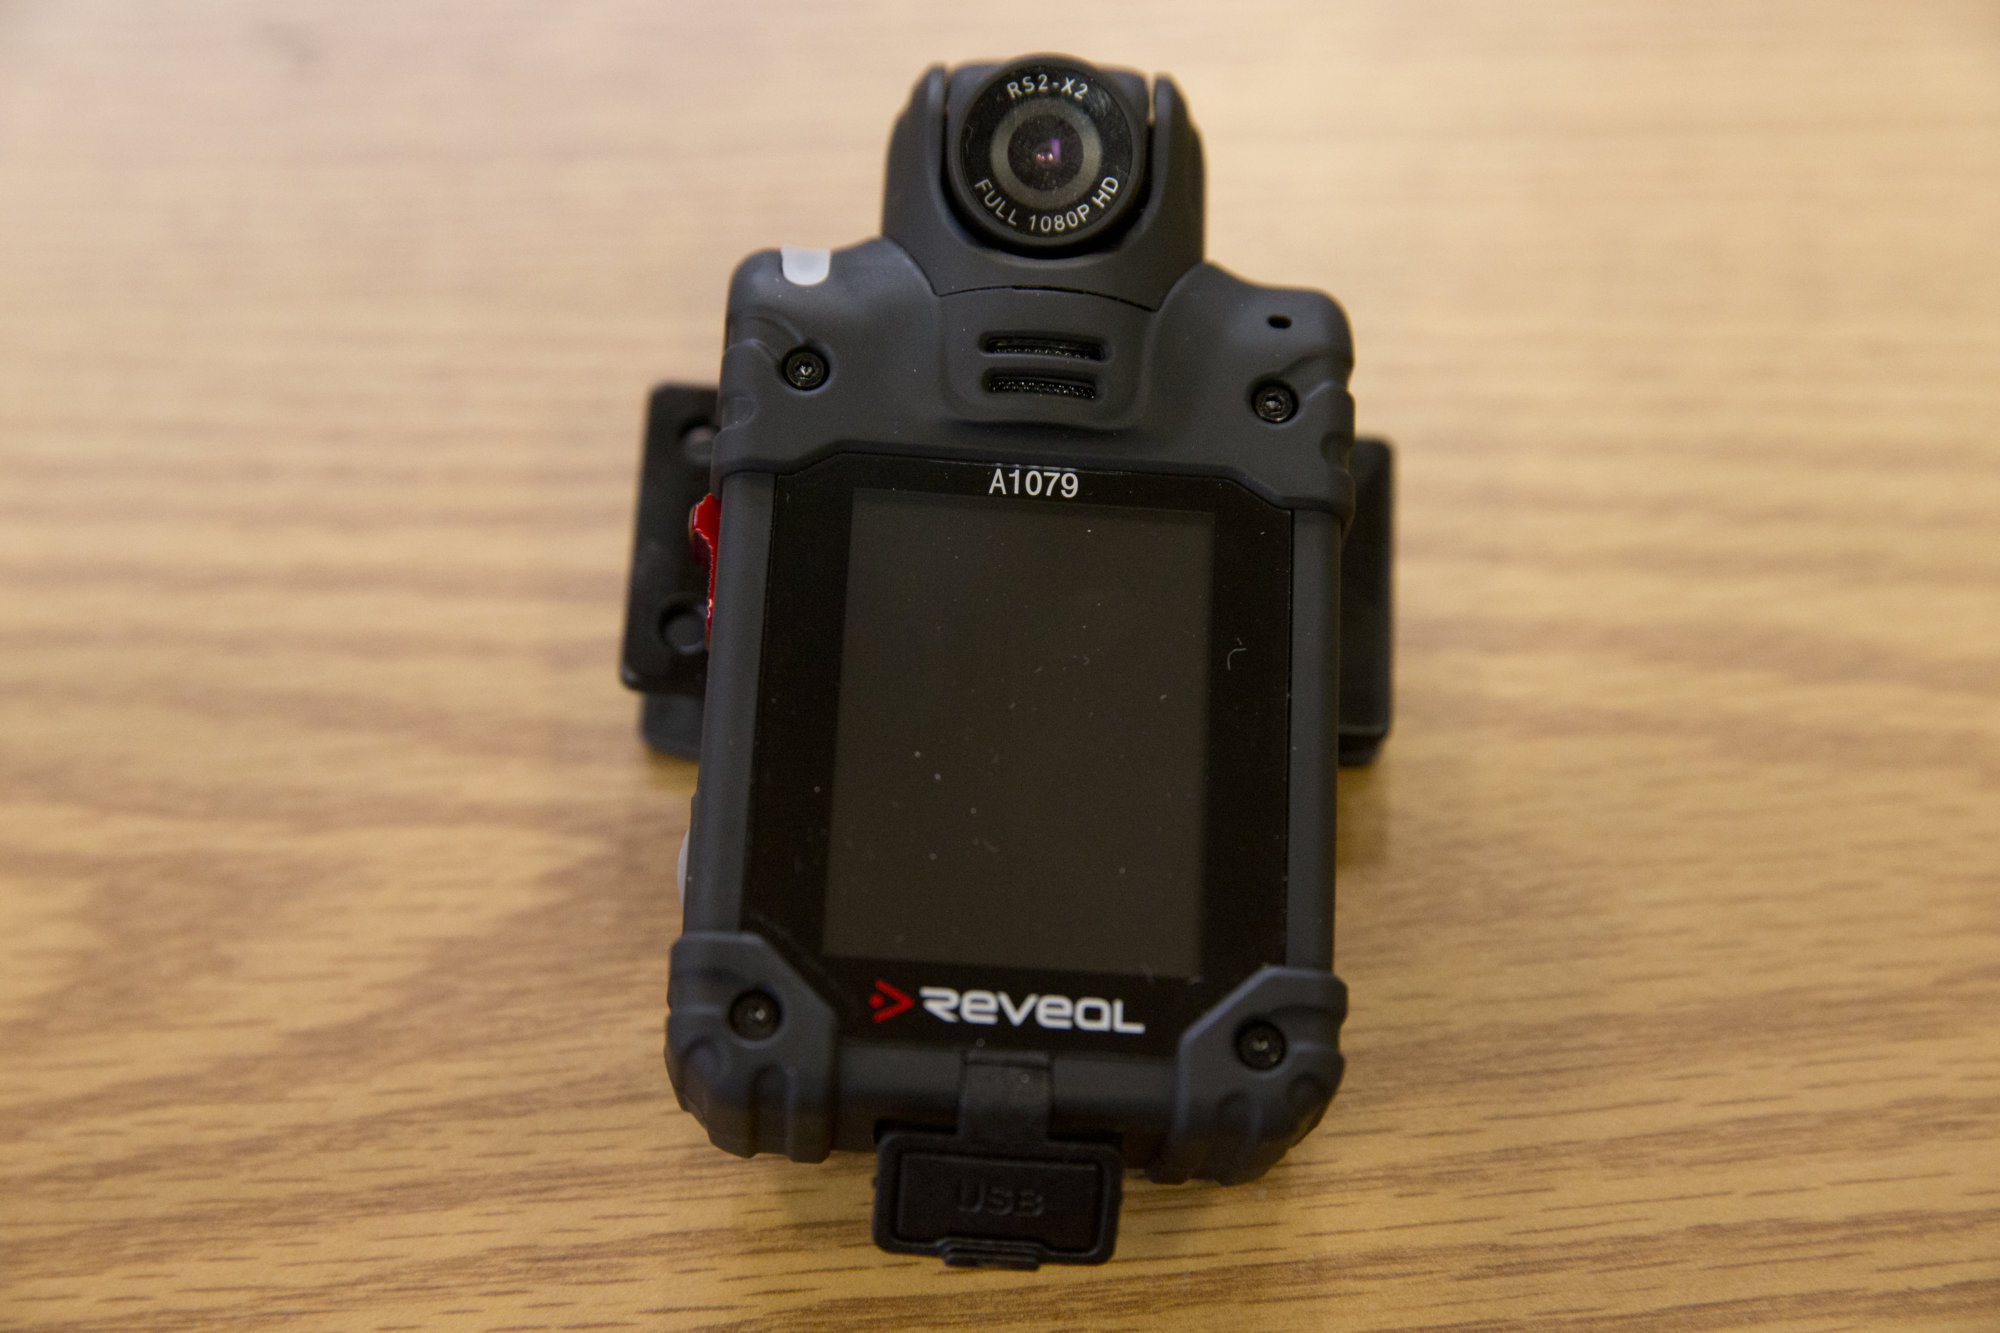 DC police's body-worn camera program faces criticism